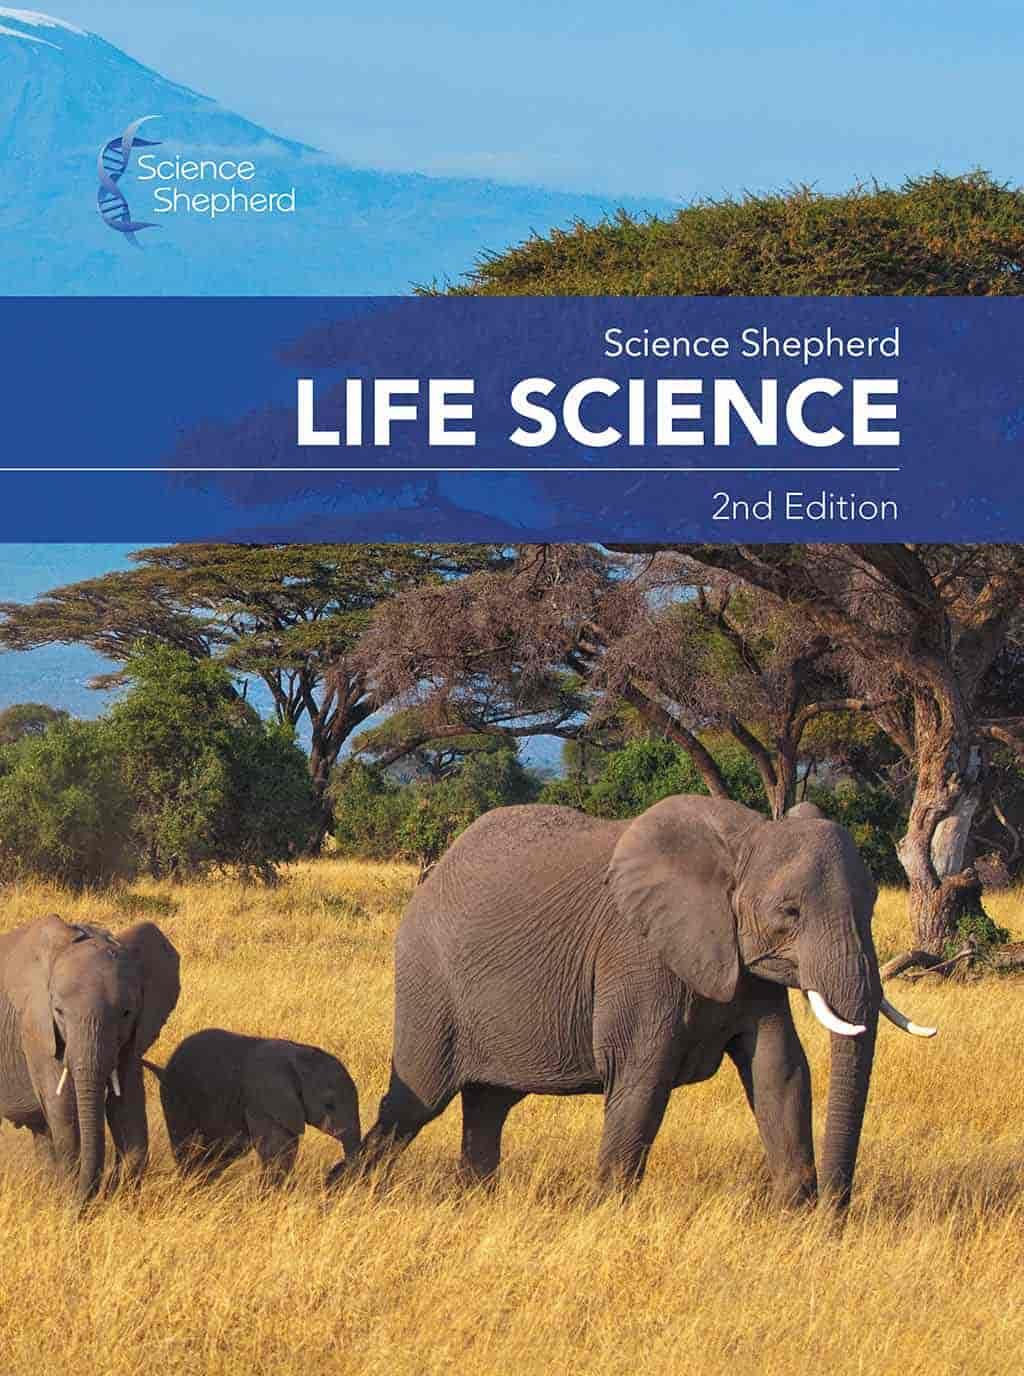 Science Shepherd Life Science homeschool middle school science textbook cover